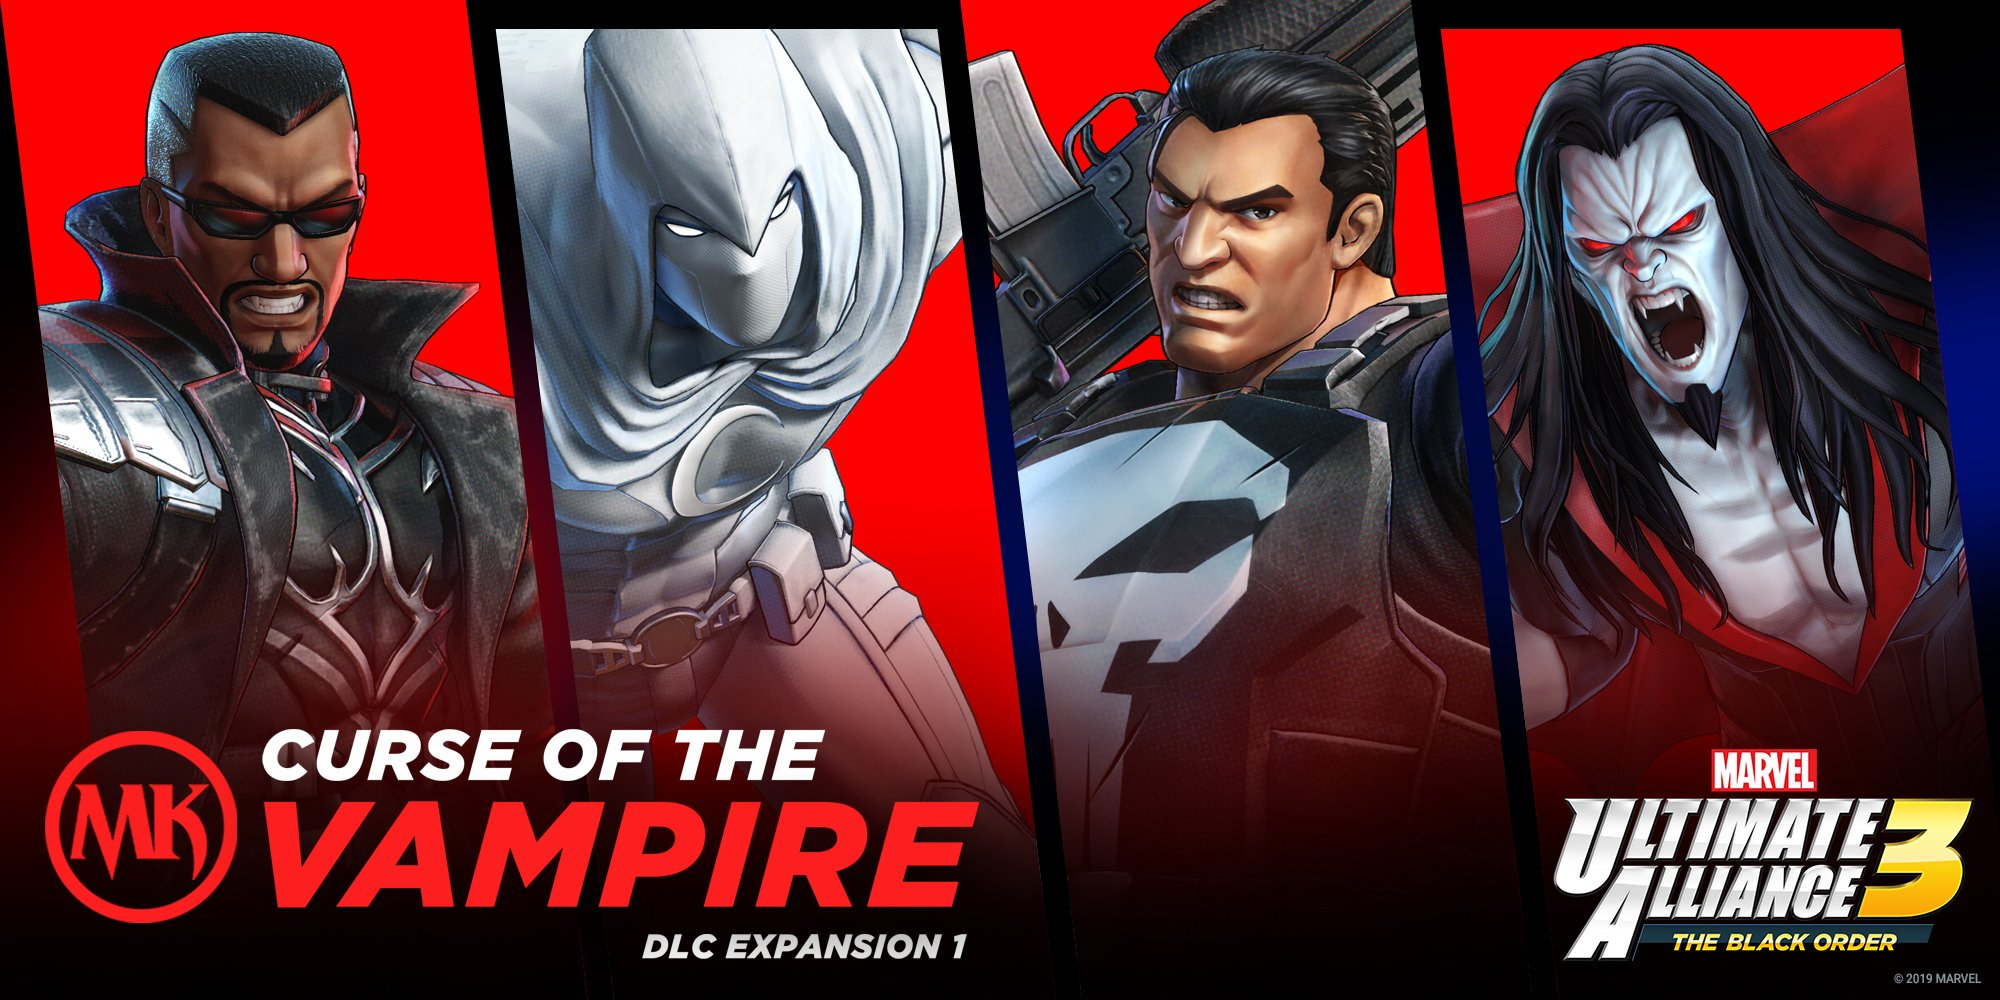 Marvel Ultimate Alliance 3: The Black Order | Primeiro DLC do game conta com Blade, Cavaleiro da Lua, Justiceiro e Morbius.